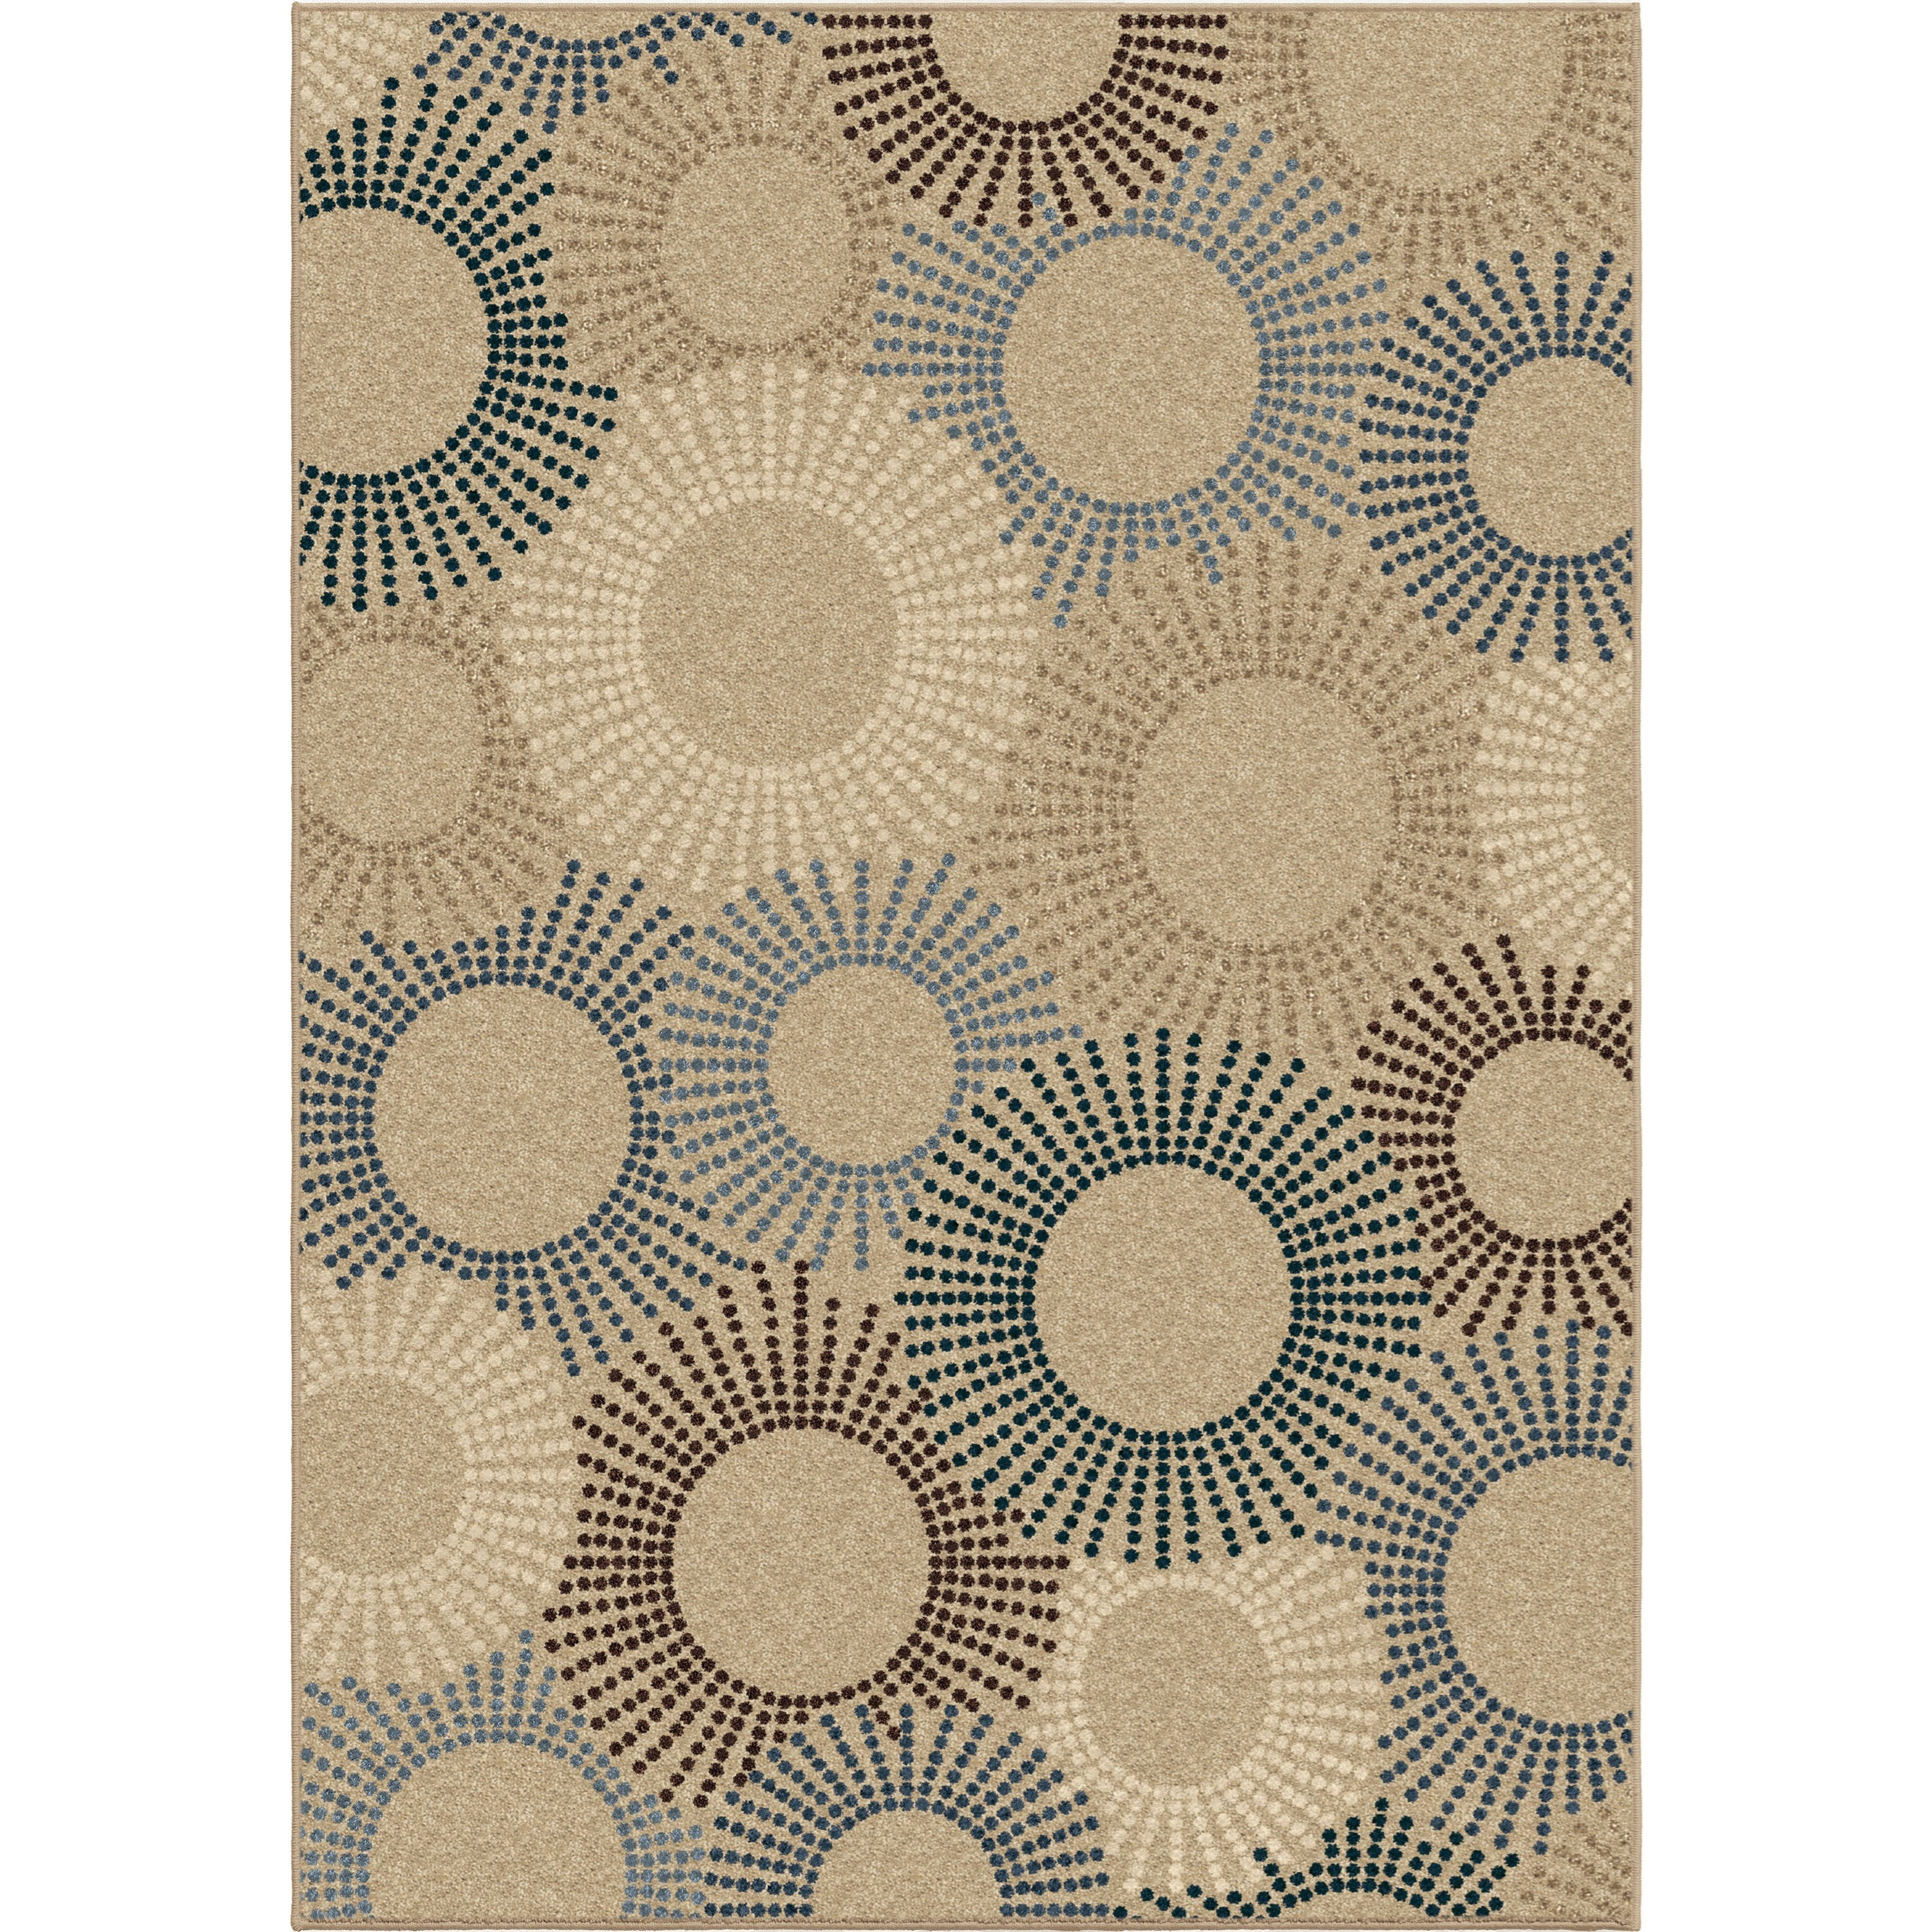 """Four Seasons Ray of Light Beige 5'2"""" x 7'6"""" Rug by Orian Rugs at Mueller Furniture"""